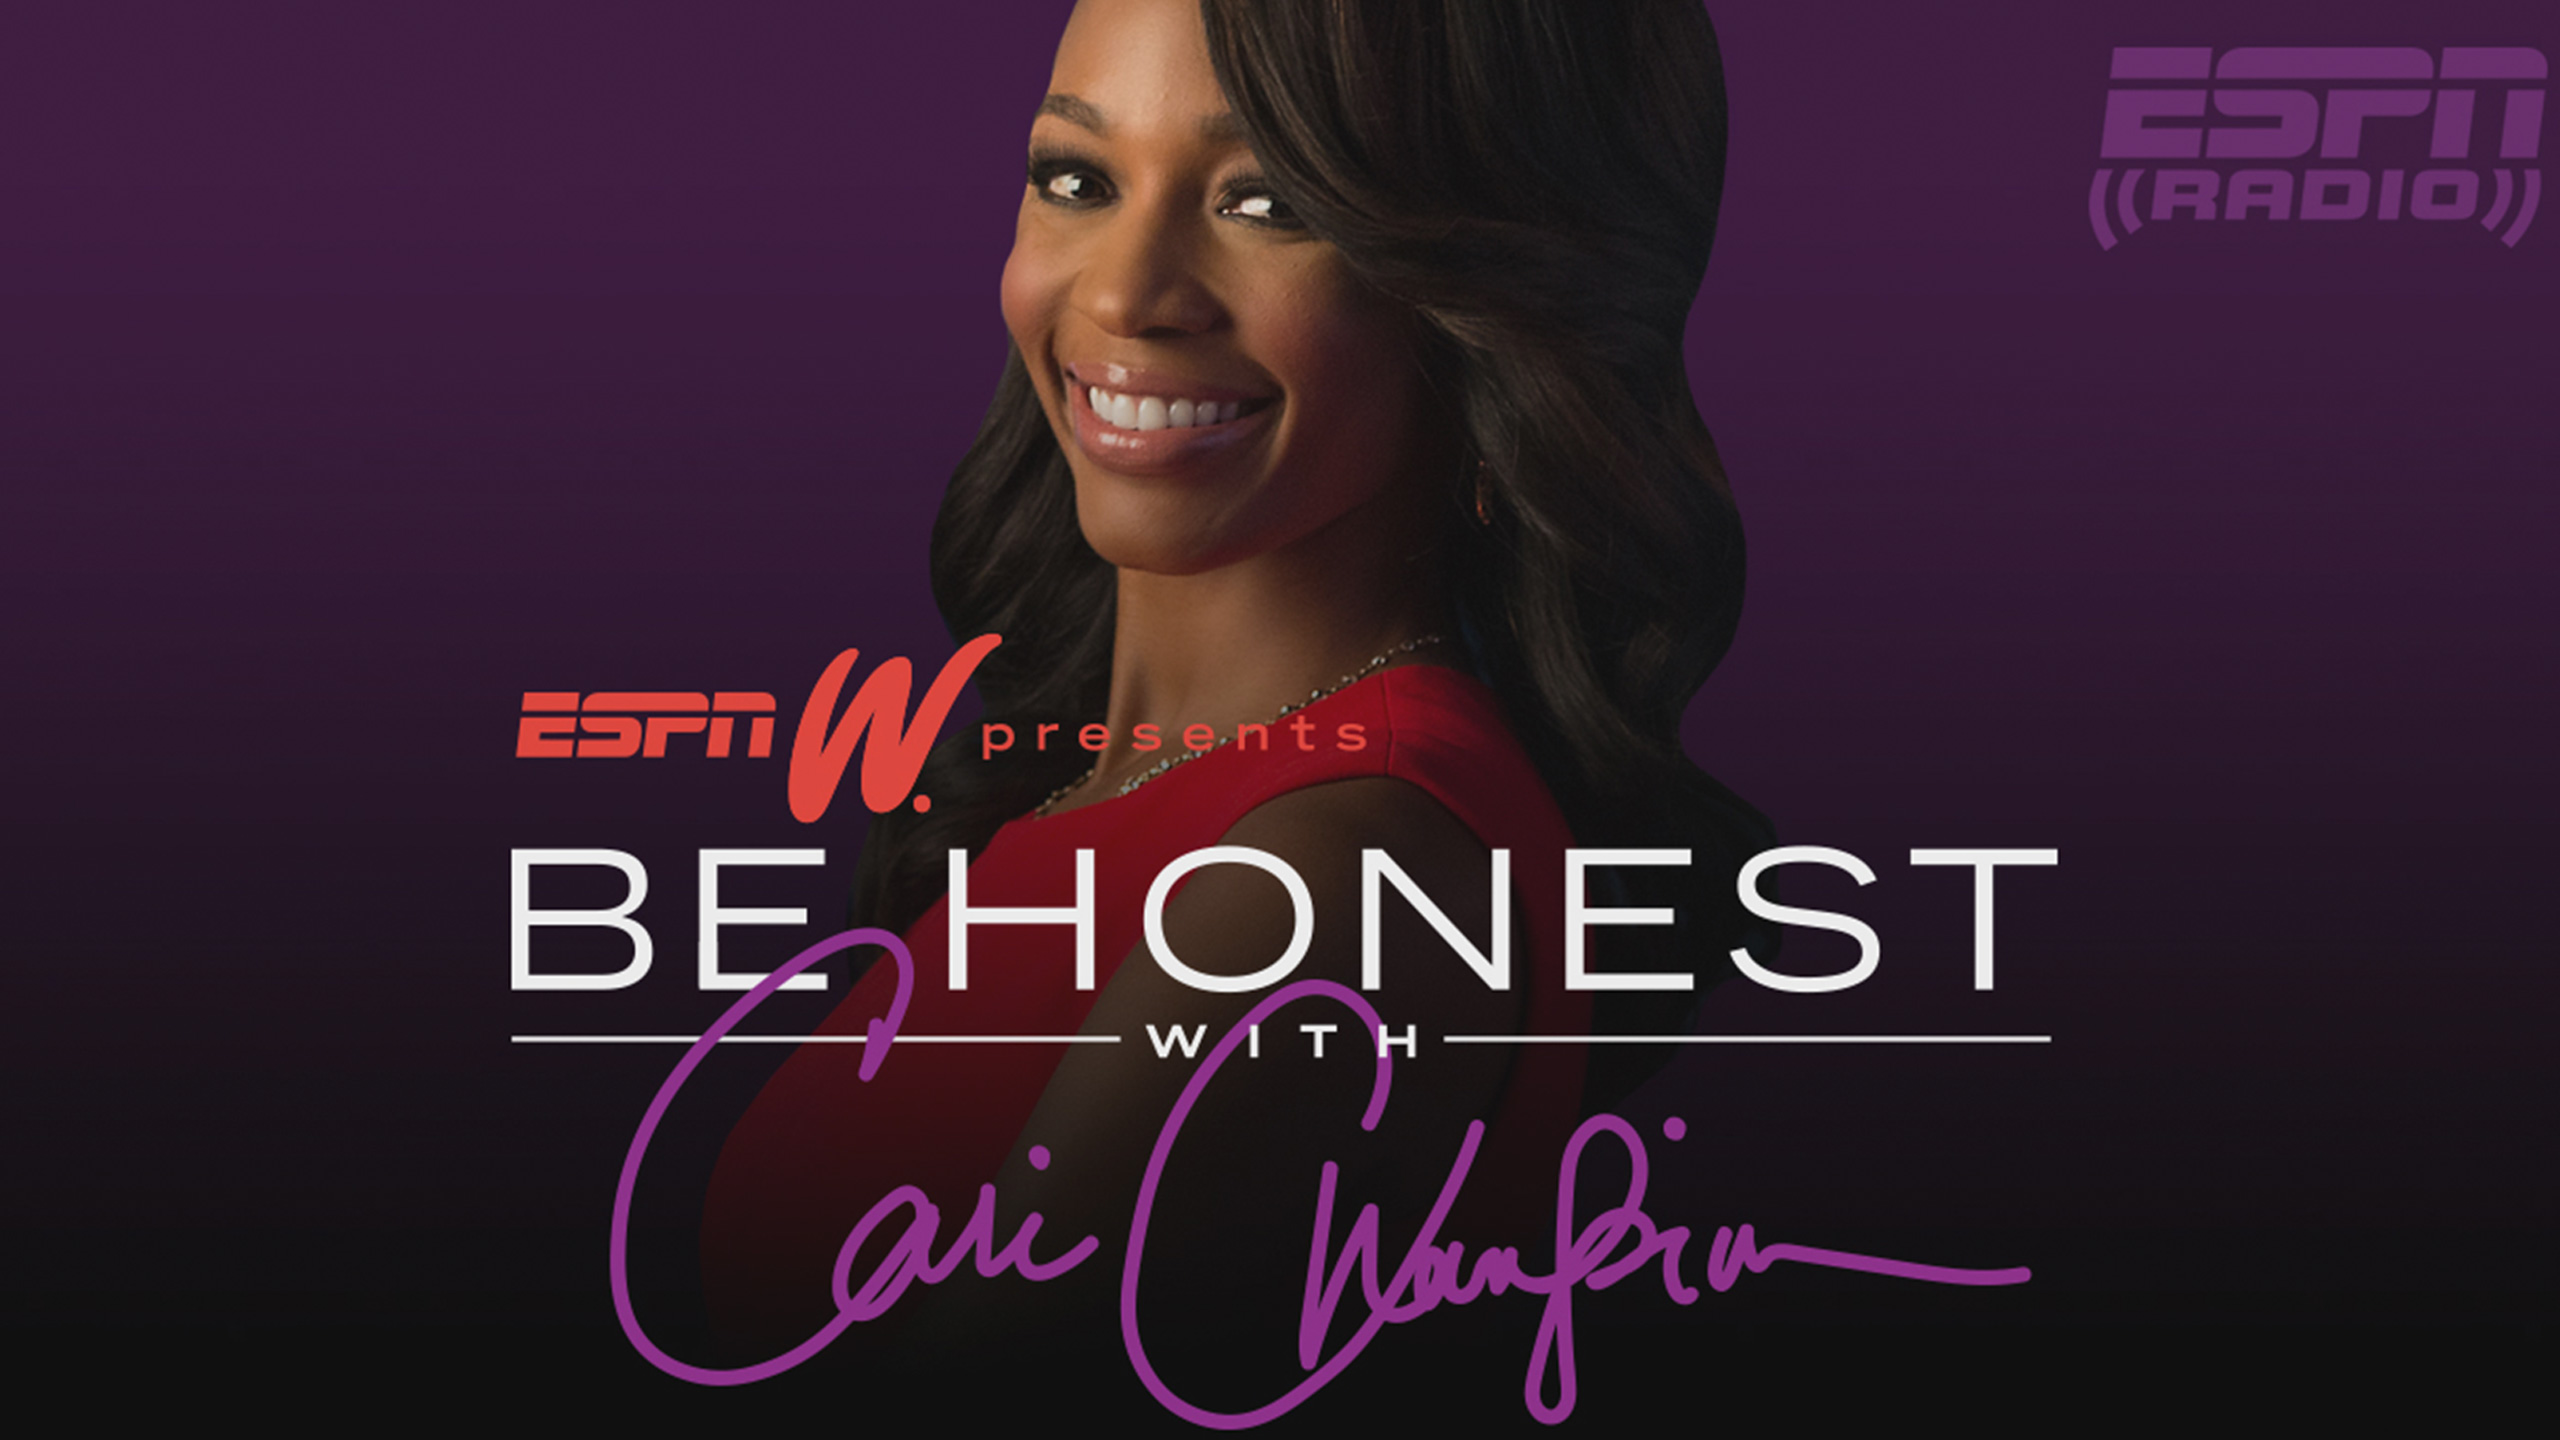 Tue, 12/18 - Be Honest with Cari Champion